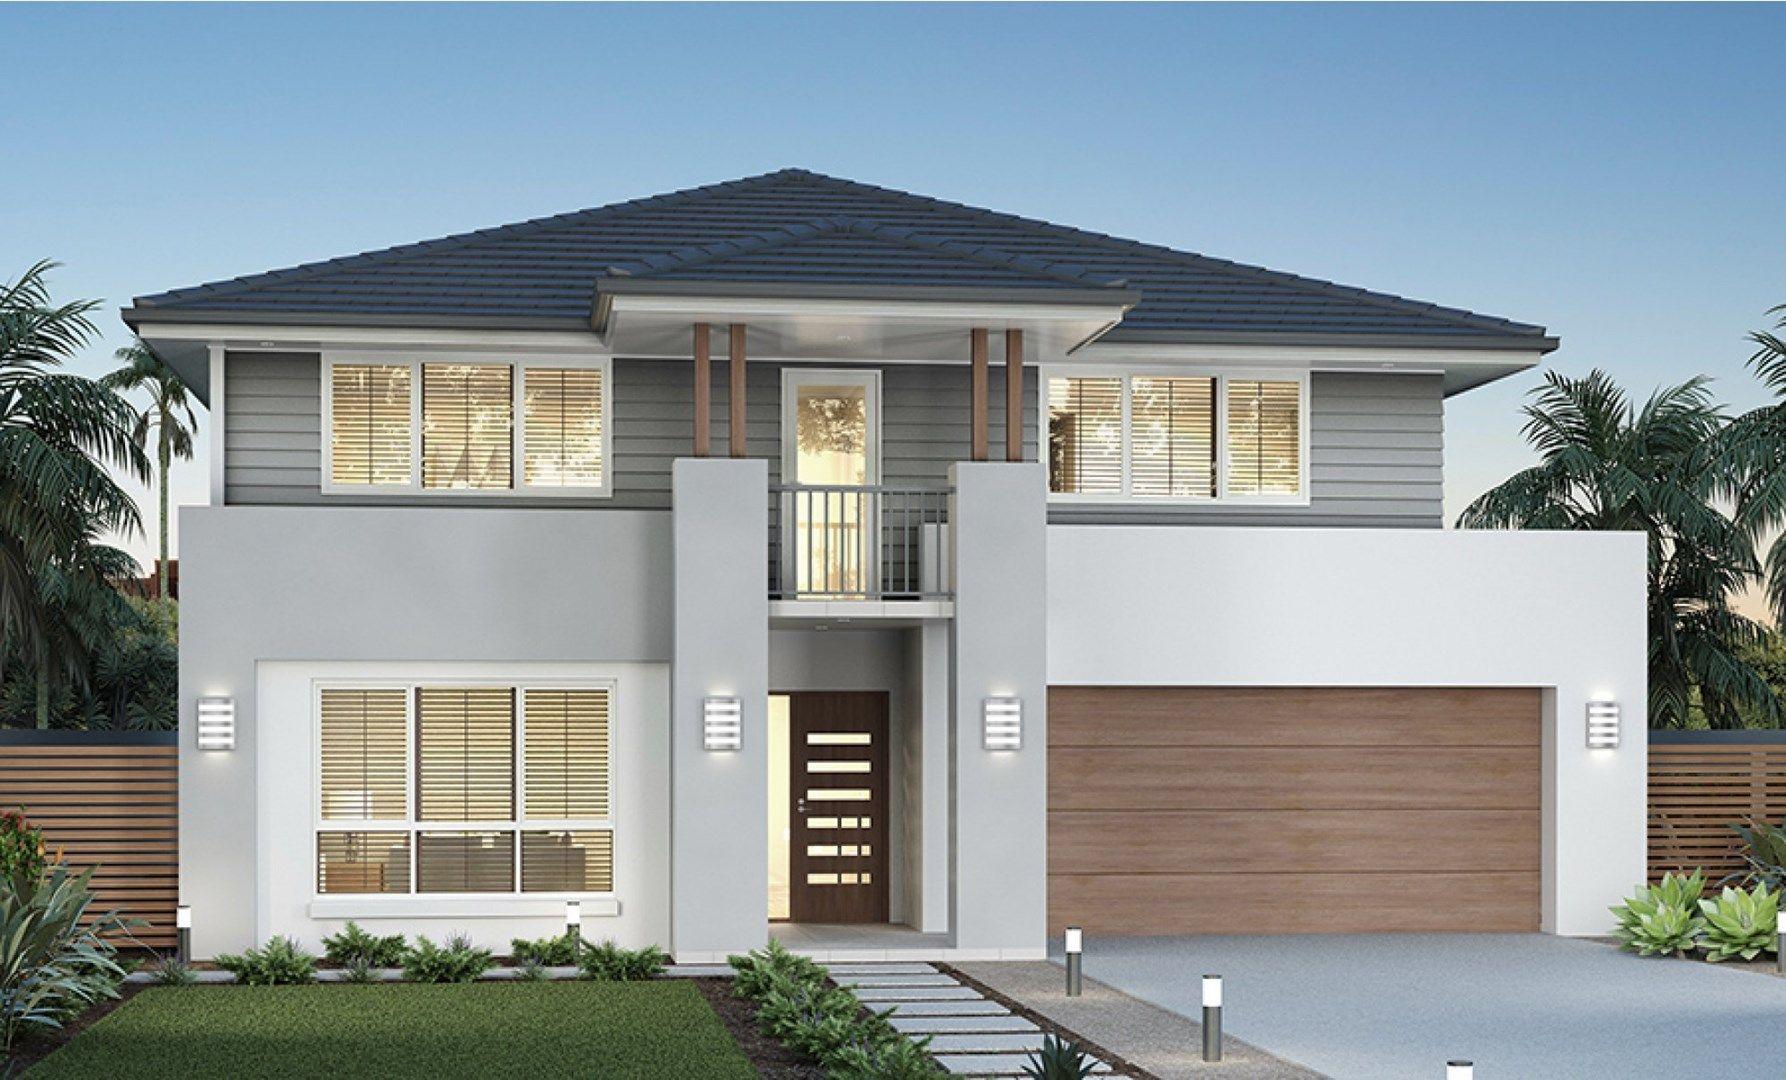 Lot 351 New Road, Springfield QLD 4300, Image 0